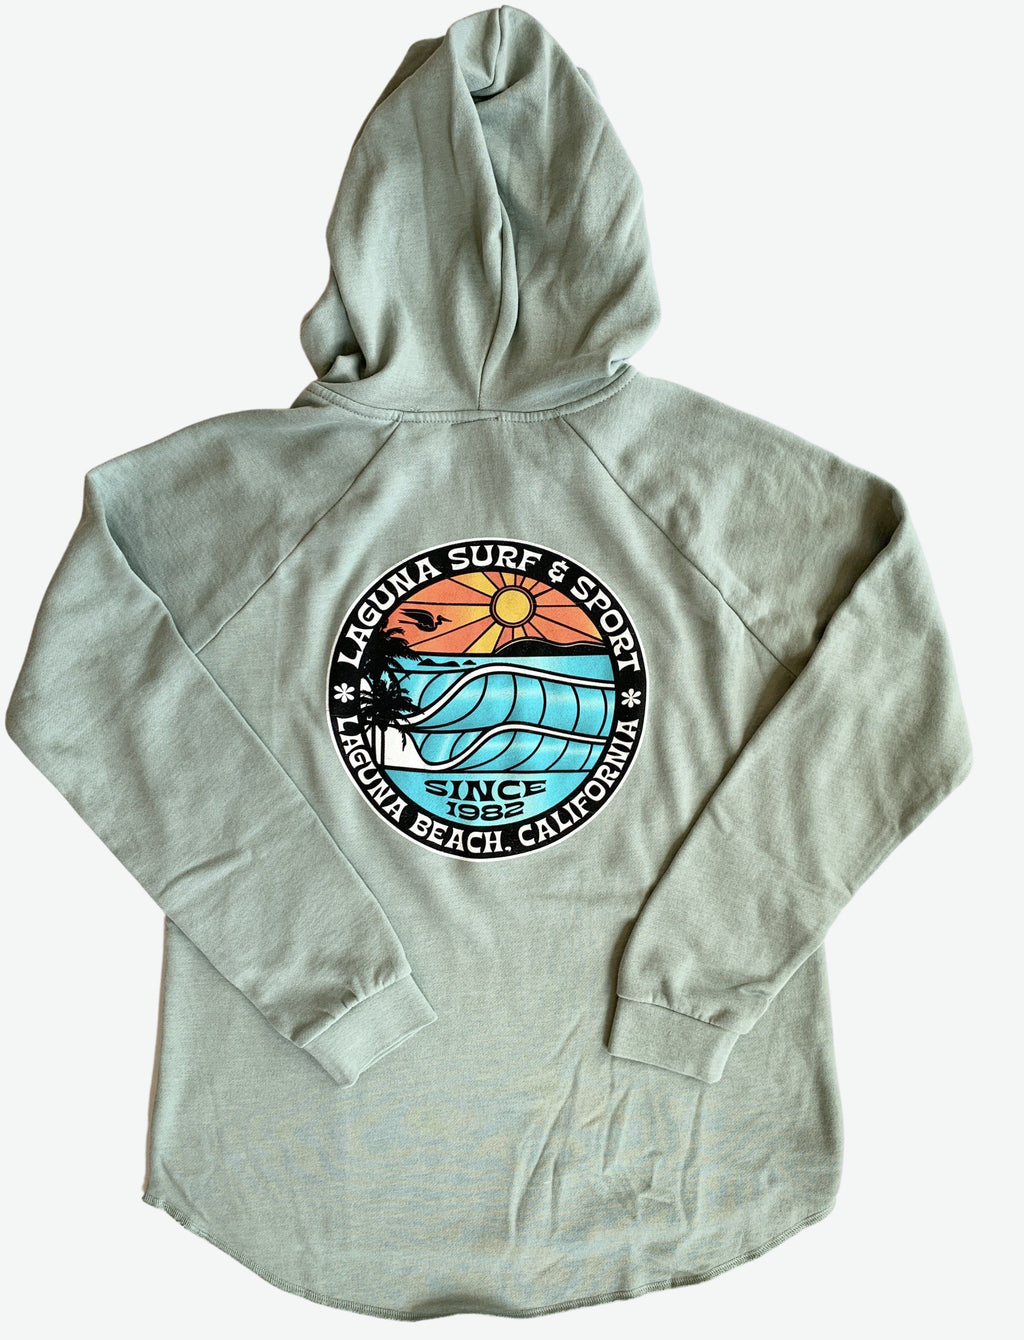 BROOKS STREET  Womens Vintage Wash Hoodie  (More Colors Available)  - Laguna Surf & Sport